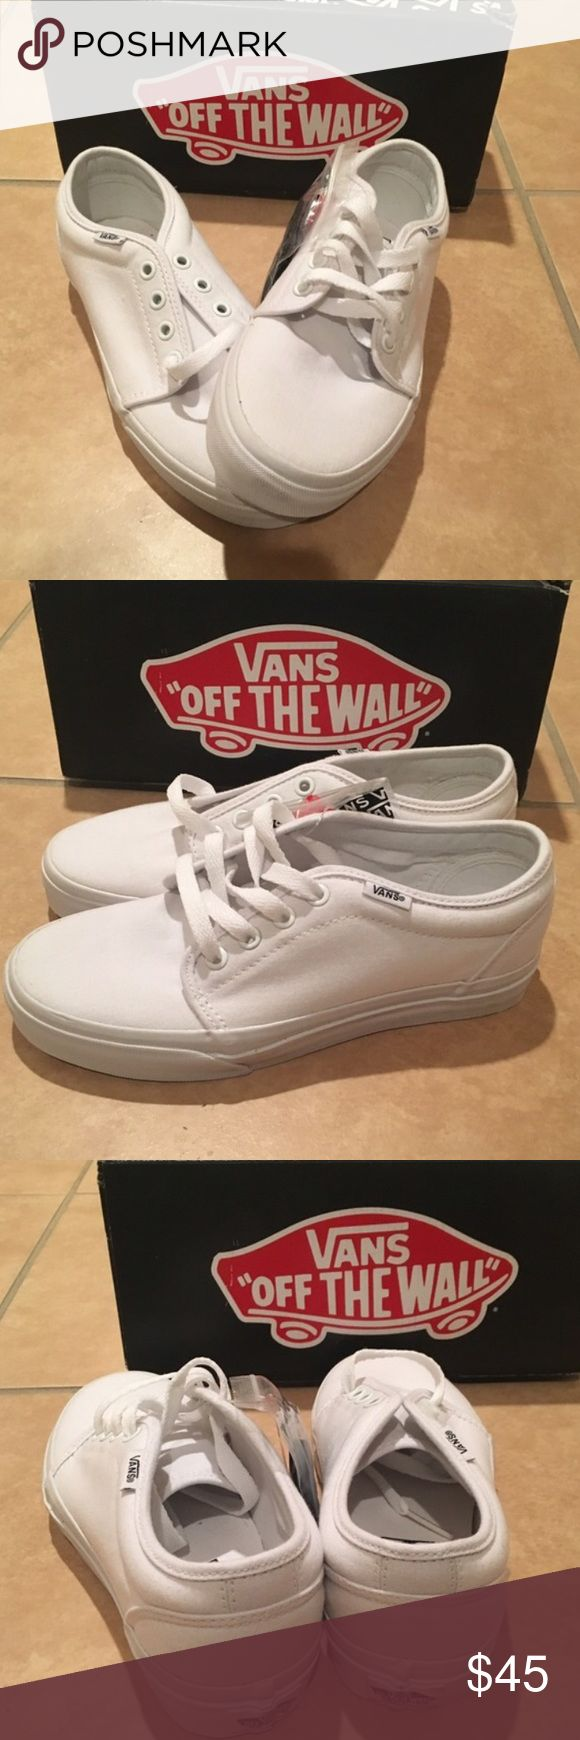 Vans 106 VULCANIZED SKATE SHOES New in box. White Vans Shoes Sneakers